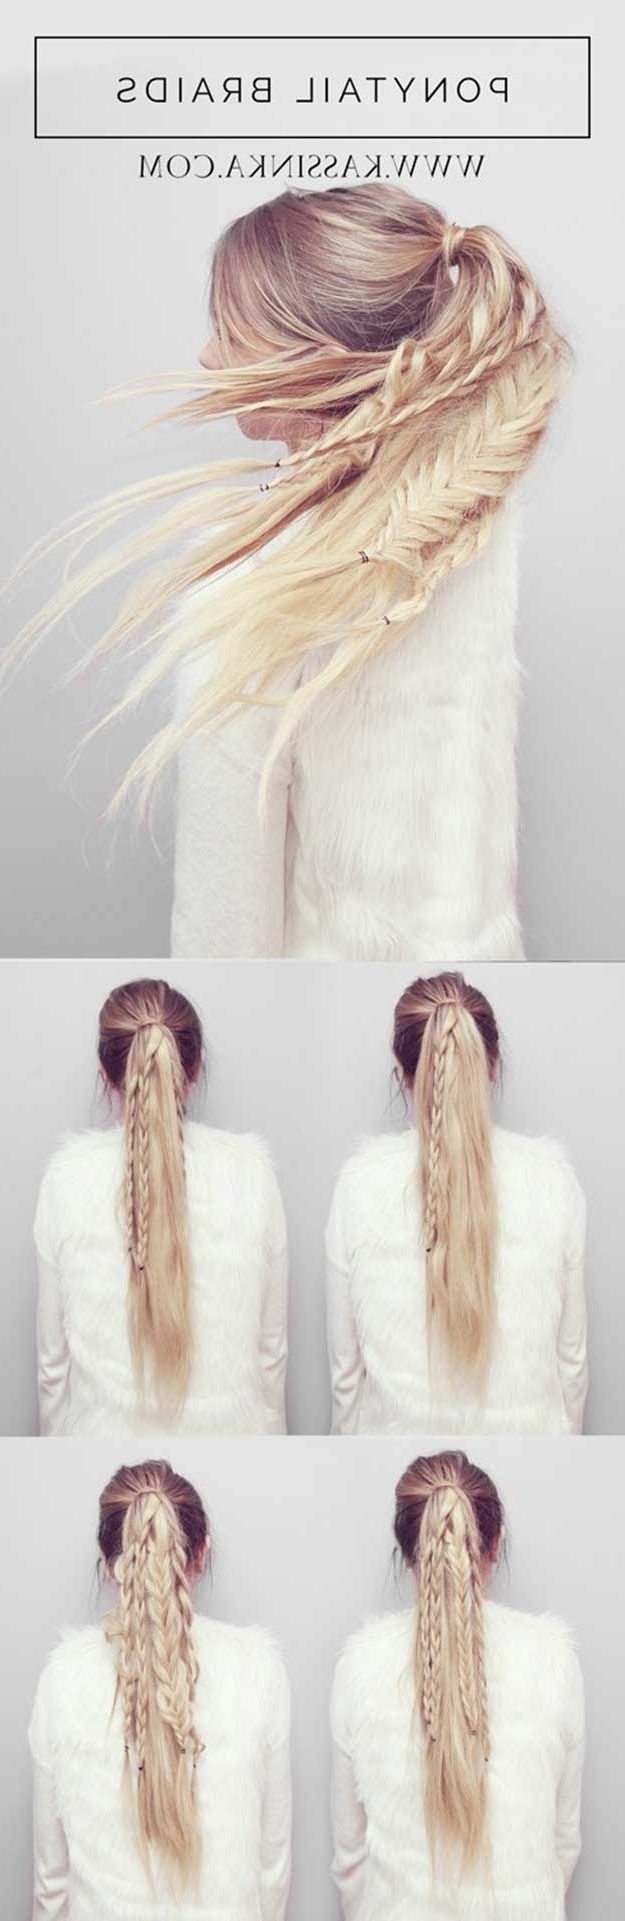 41 Best Hairstyles For Summer The Goddess Cute Summer Hairstyles For Medium Hair